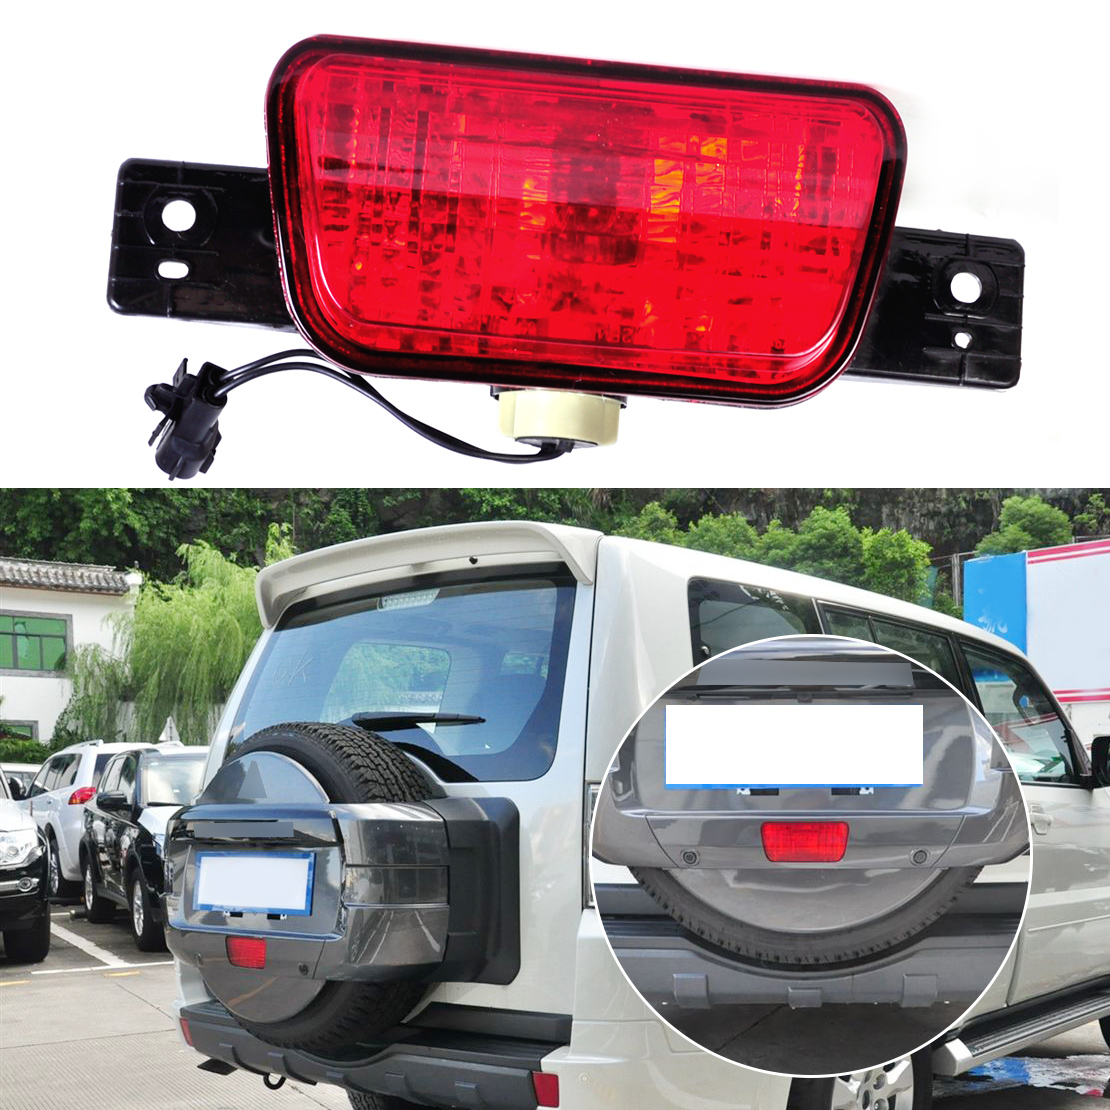 DWCX Rear Spare Tire Lamp Tail Bumper Light Fog Lamp for Mitsubishi Pajero Shogun 2007 2008 2009 2010 2011 2012 2013 2014 2015 citall rear spare tire cover tail bumper light fog lamp for mitsubishi pajero shogun 2007 2009 2010 2011 2012 2013 2014 2015